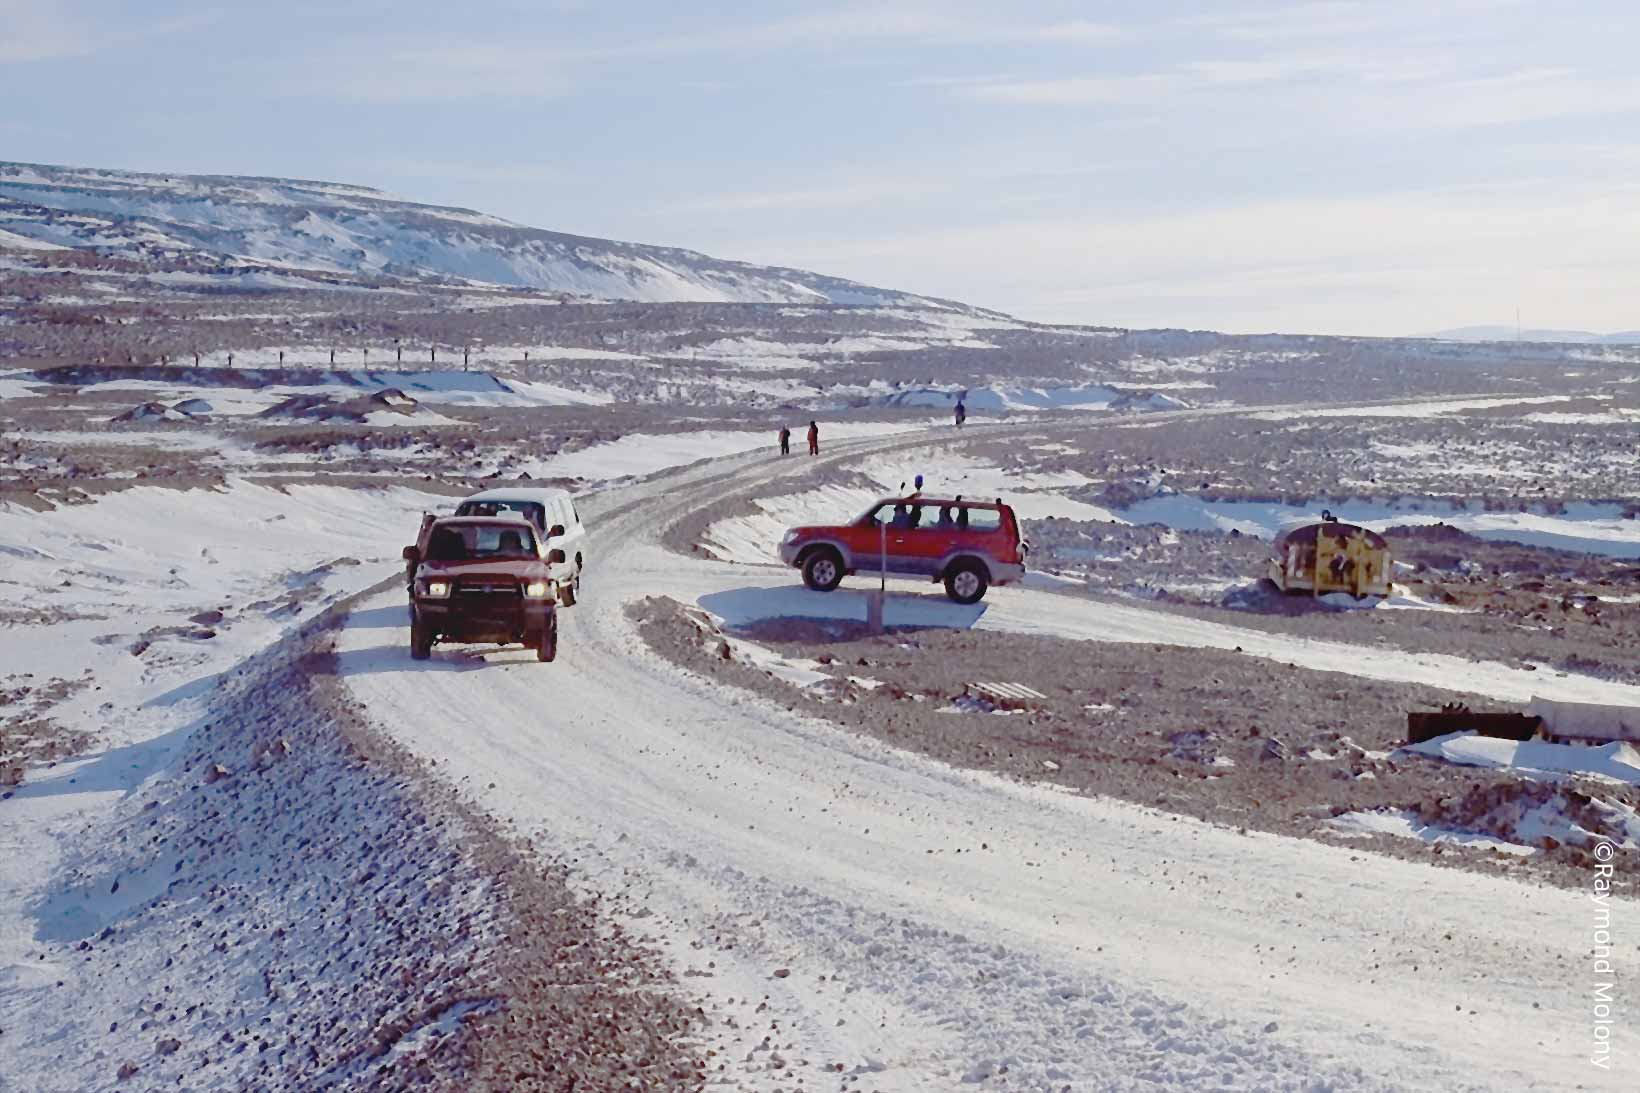 The road to Qaanaaq Airport